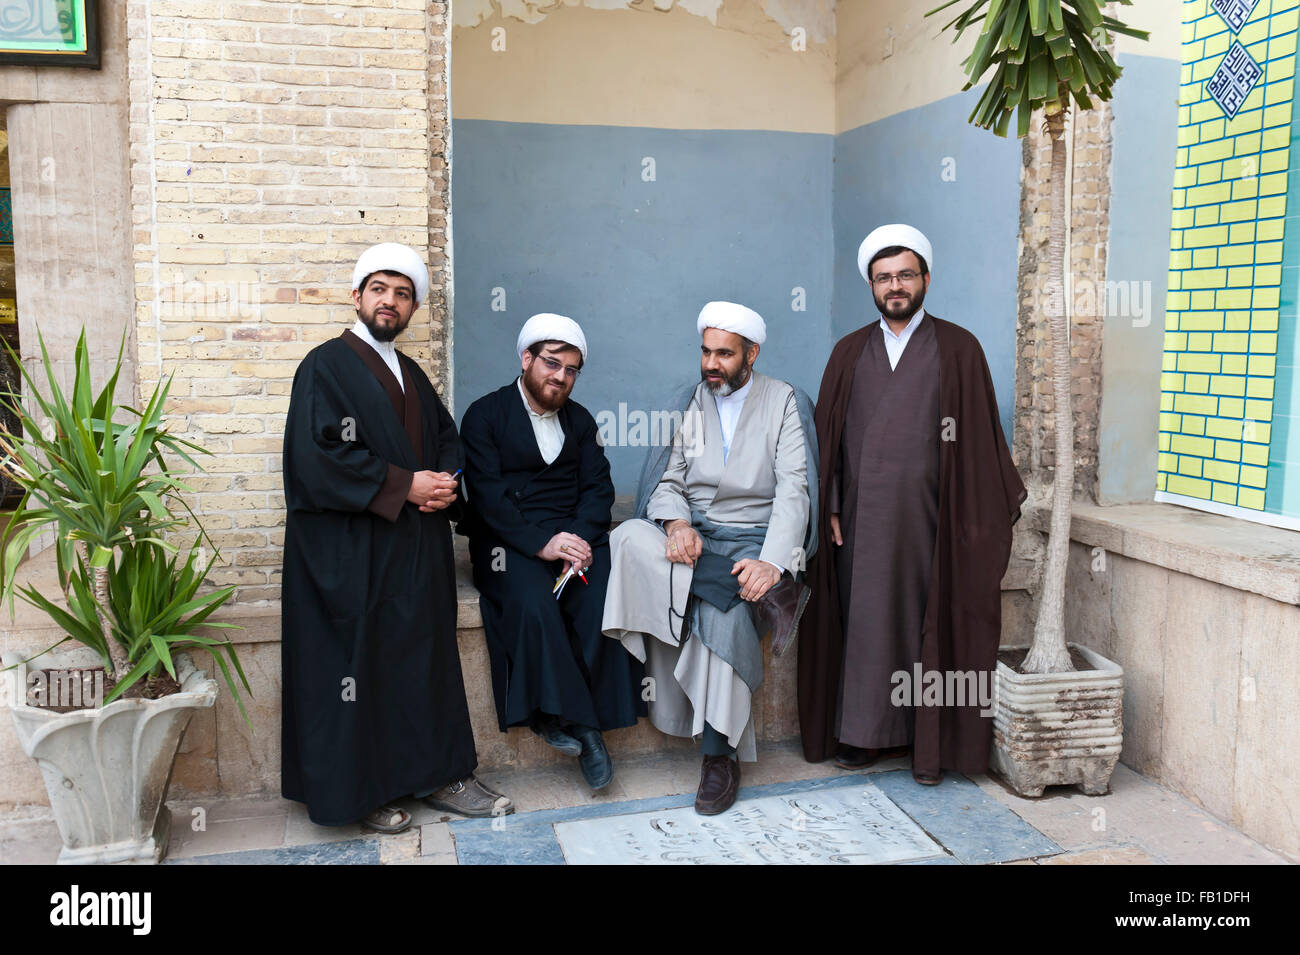 Four mullahs with turbans and long robes, Shiite clerics, Ali Ebn Mosque Imamzadeh-ye-e Hamze or Ali ibn Ahmad ibn - Stock Image